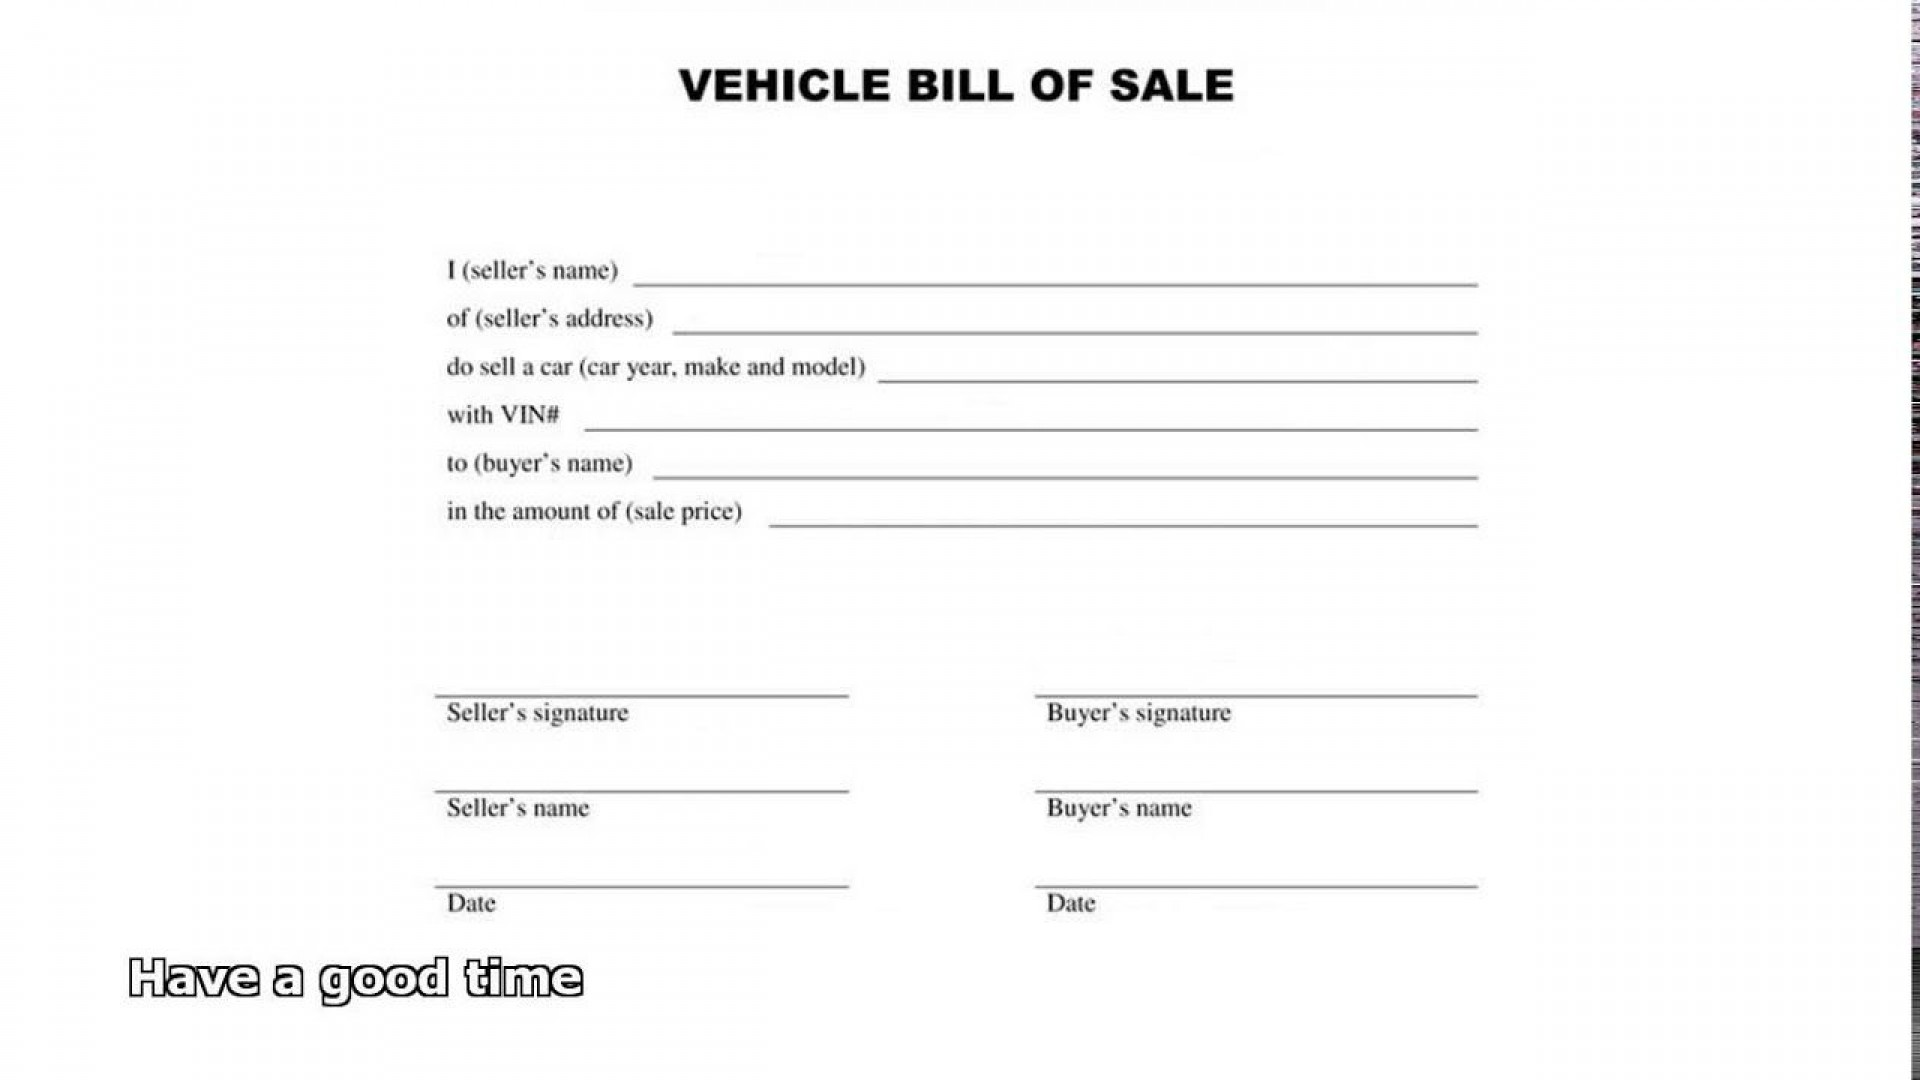 005 Best Automobile Bill Of Sale Template Design  Word Vehicle Fillable Pdf Texa With Notary1920